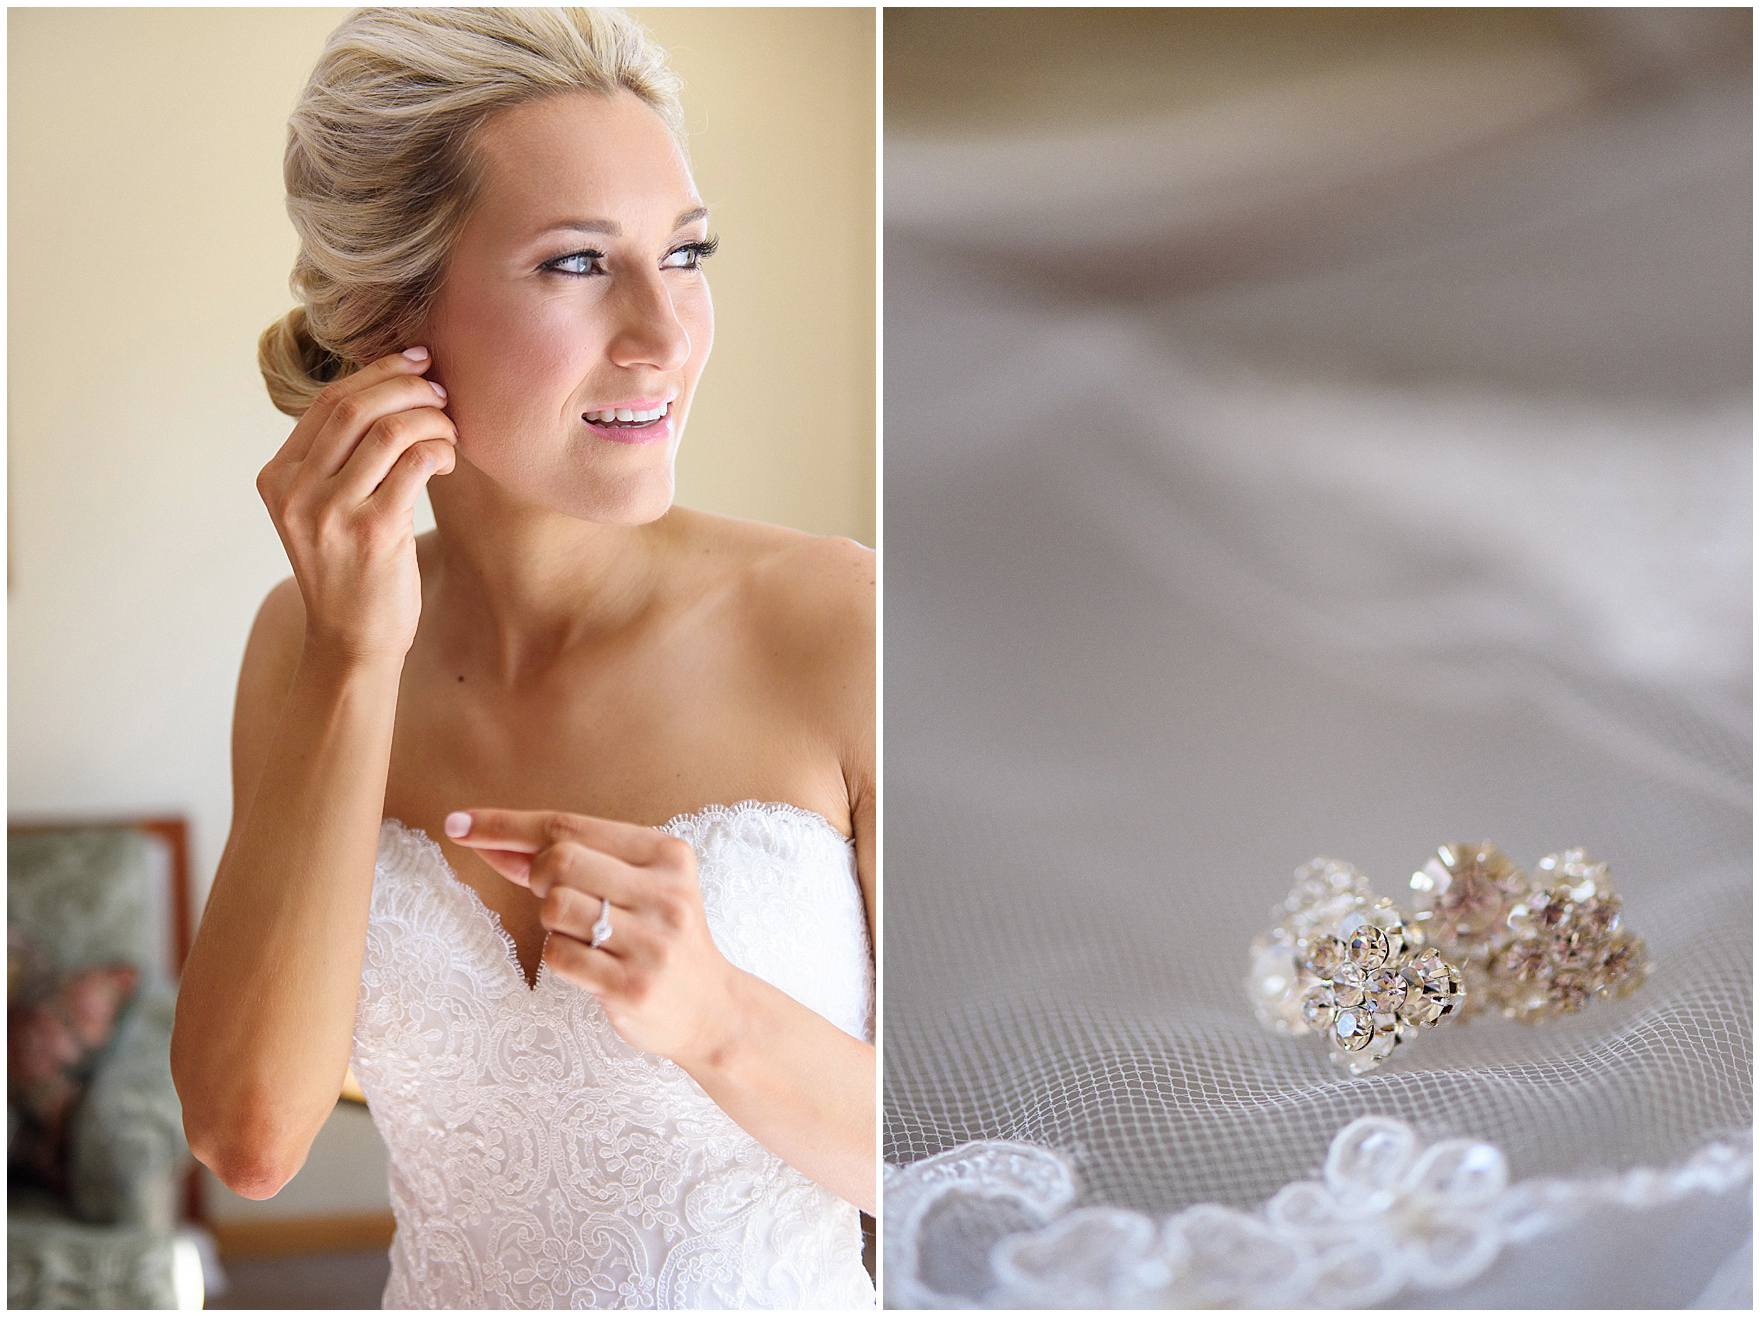 The bride gets ready for a St. Josephs Downers Grove Pinstripes Oak Brook, Illinois wedding.